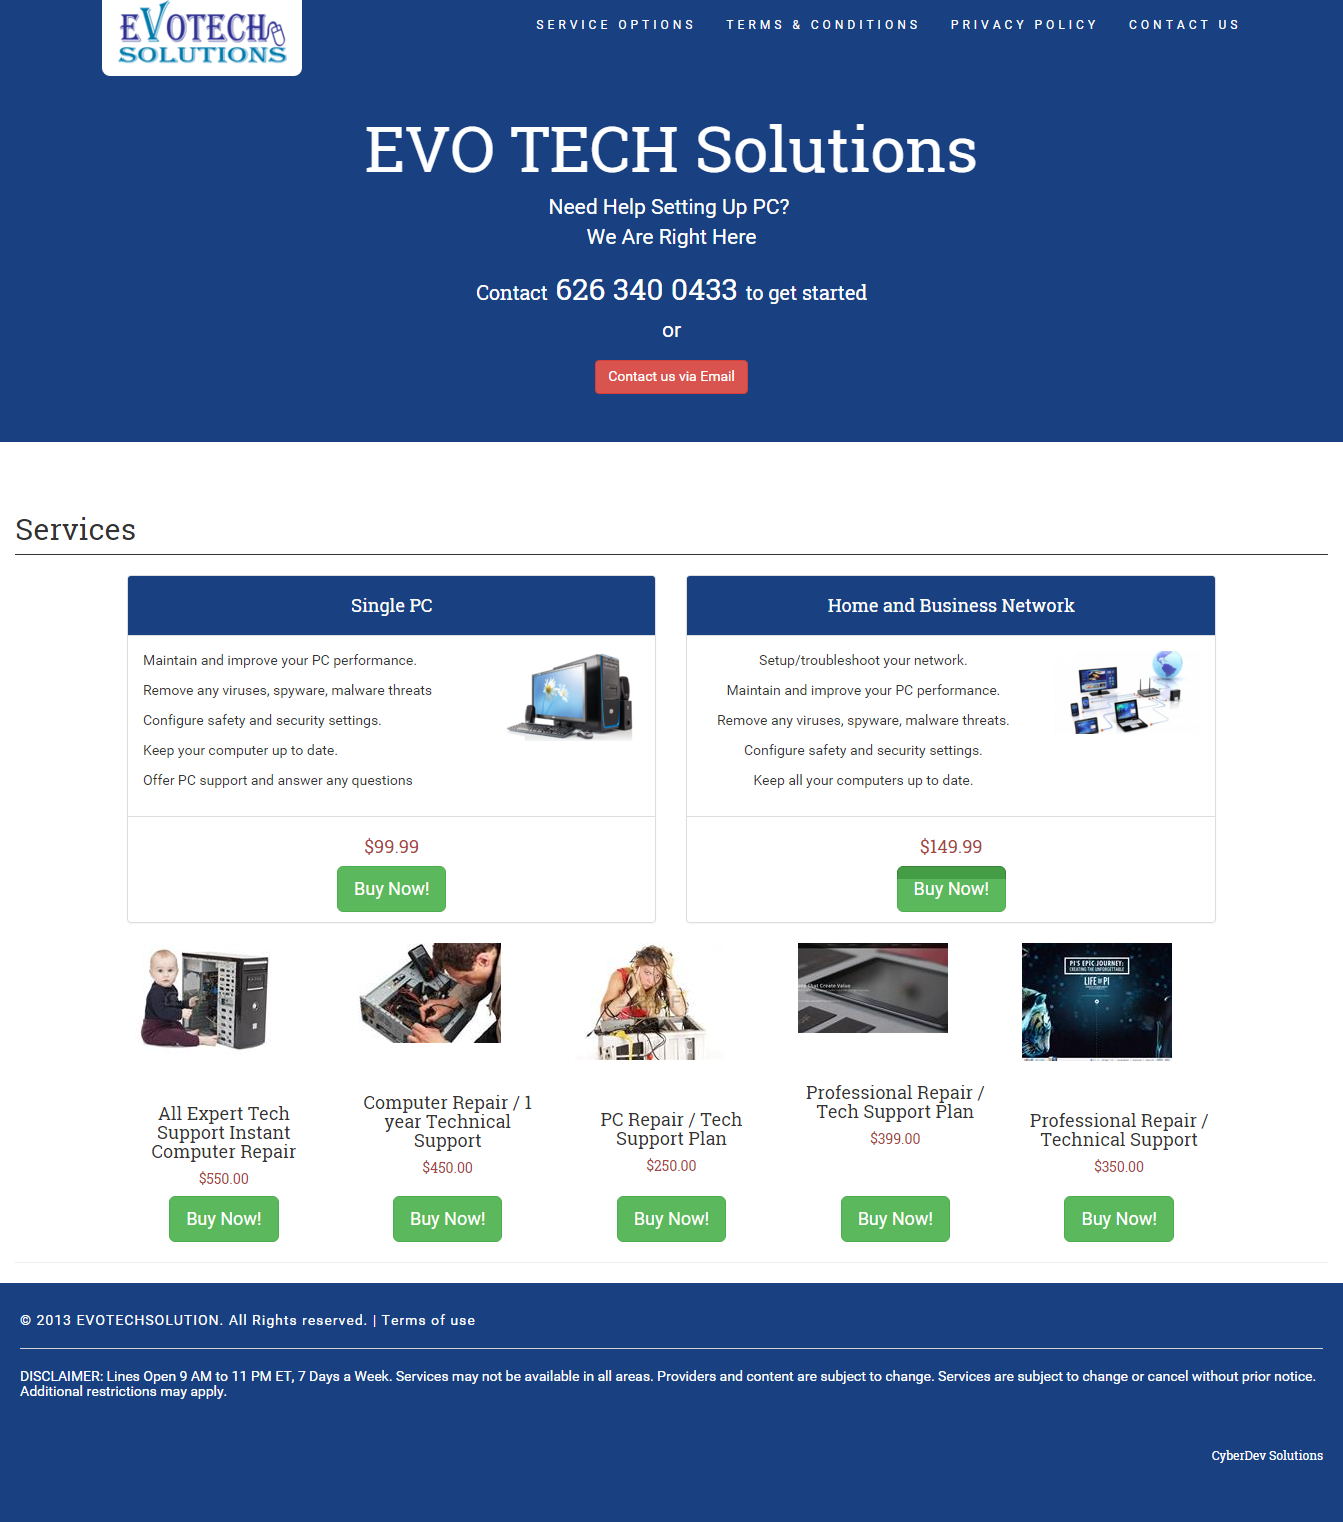 Evotech Solutions